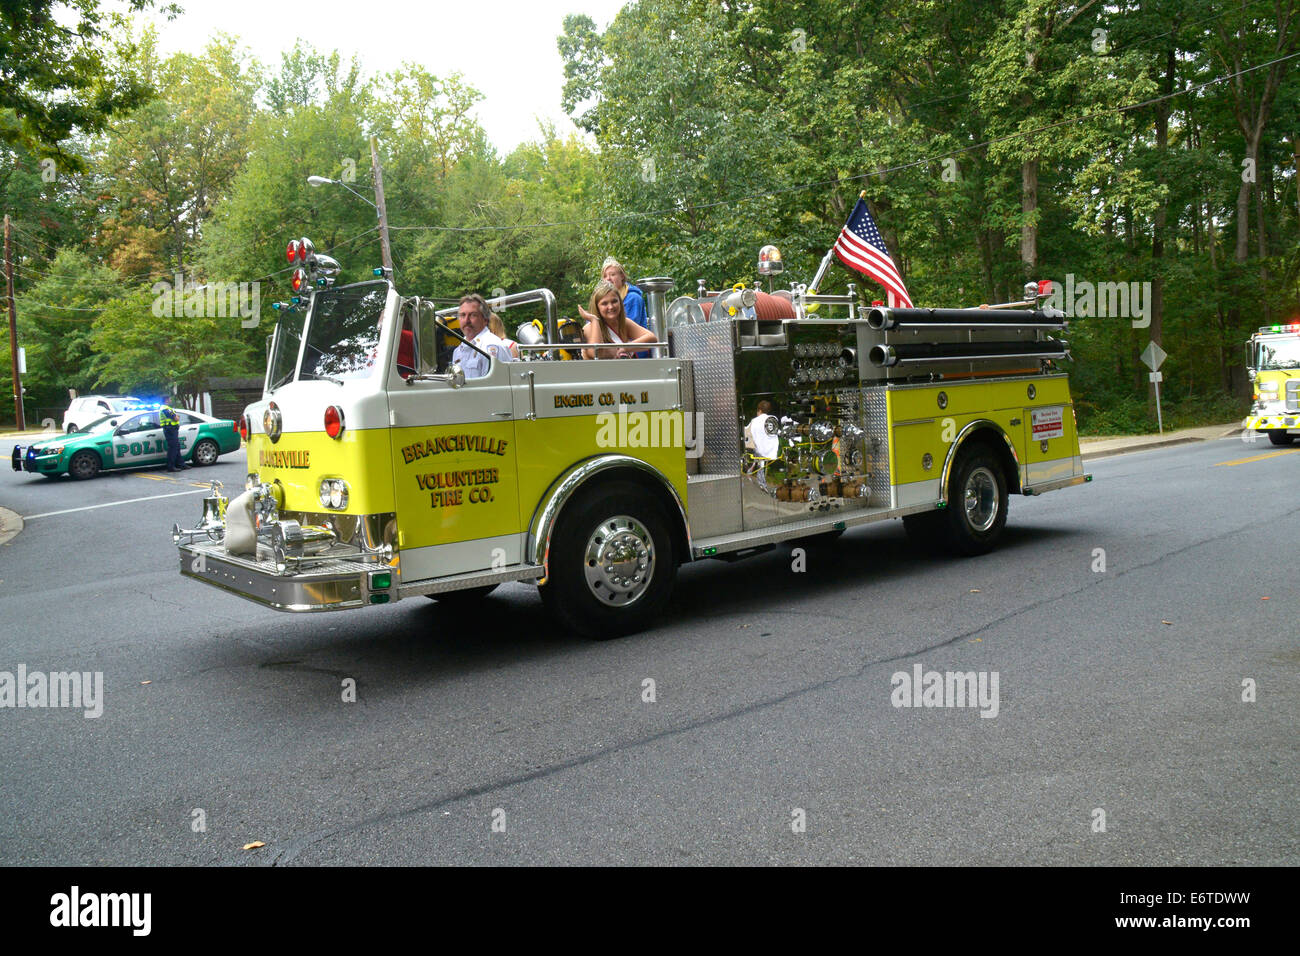 Jr Miss Fire Prevention in a fire truck in a fire department parade in Greenbelt, Maryland - Stock Image